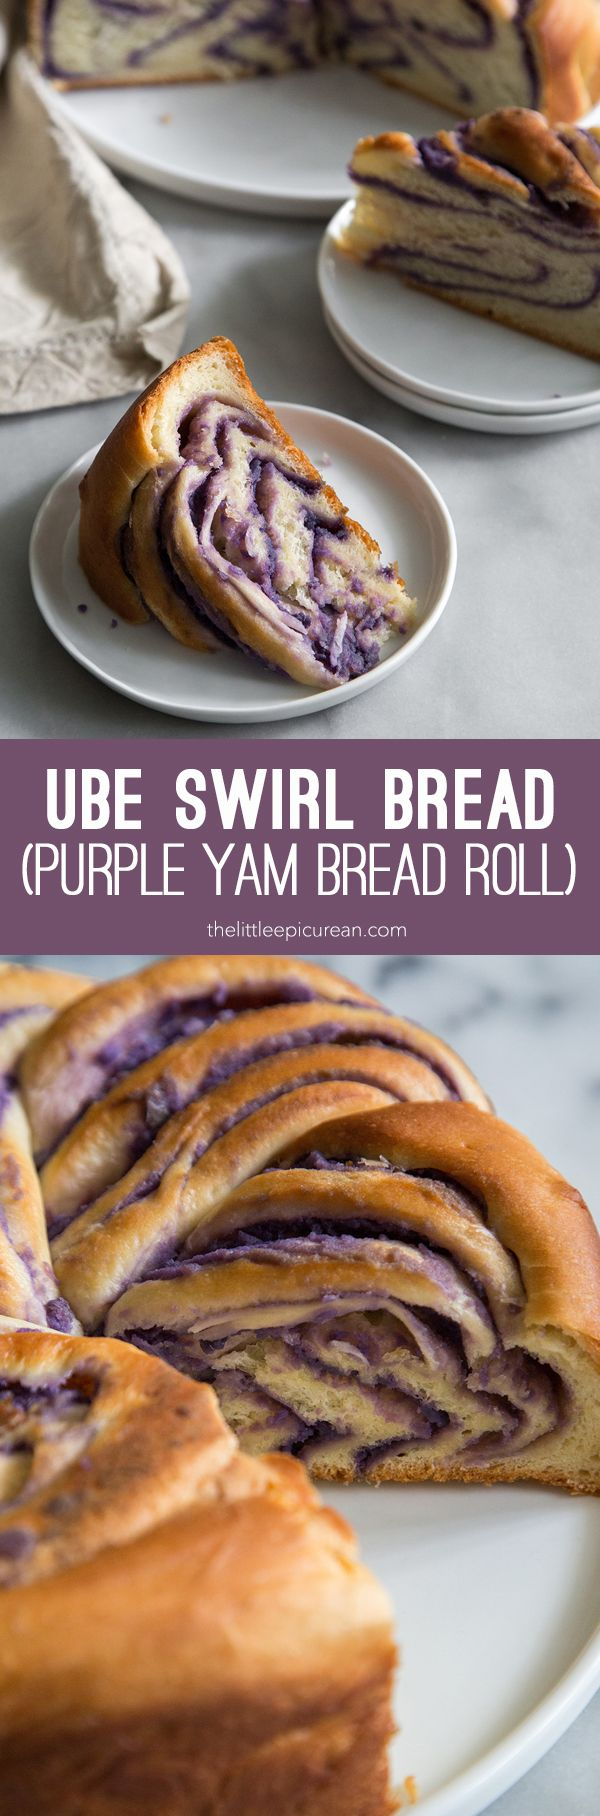 Ube Swirl Bread: soft yeasted dough filled with a sweet coconut and purple yam paste. It's an Filipino variation on a classic cinnamon roll.